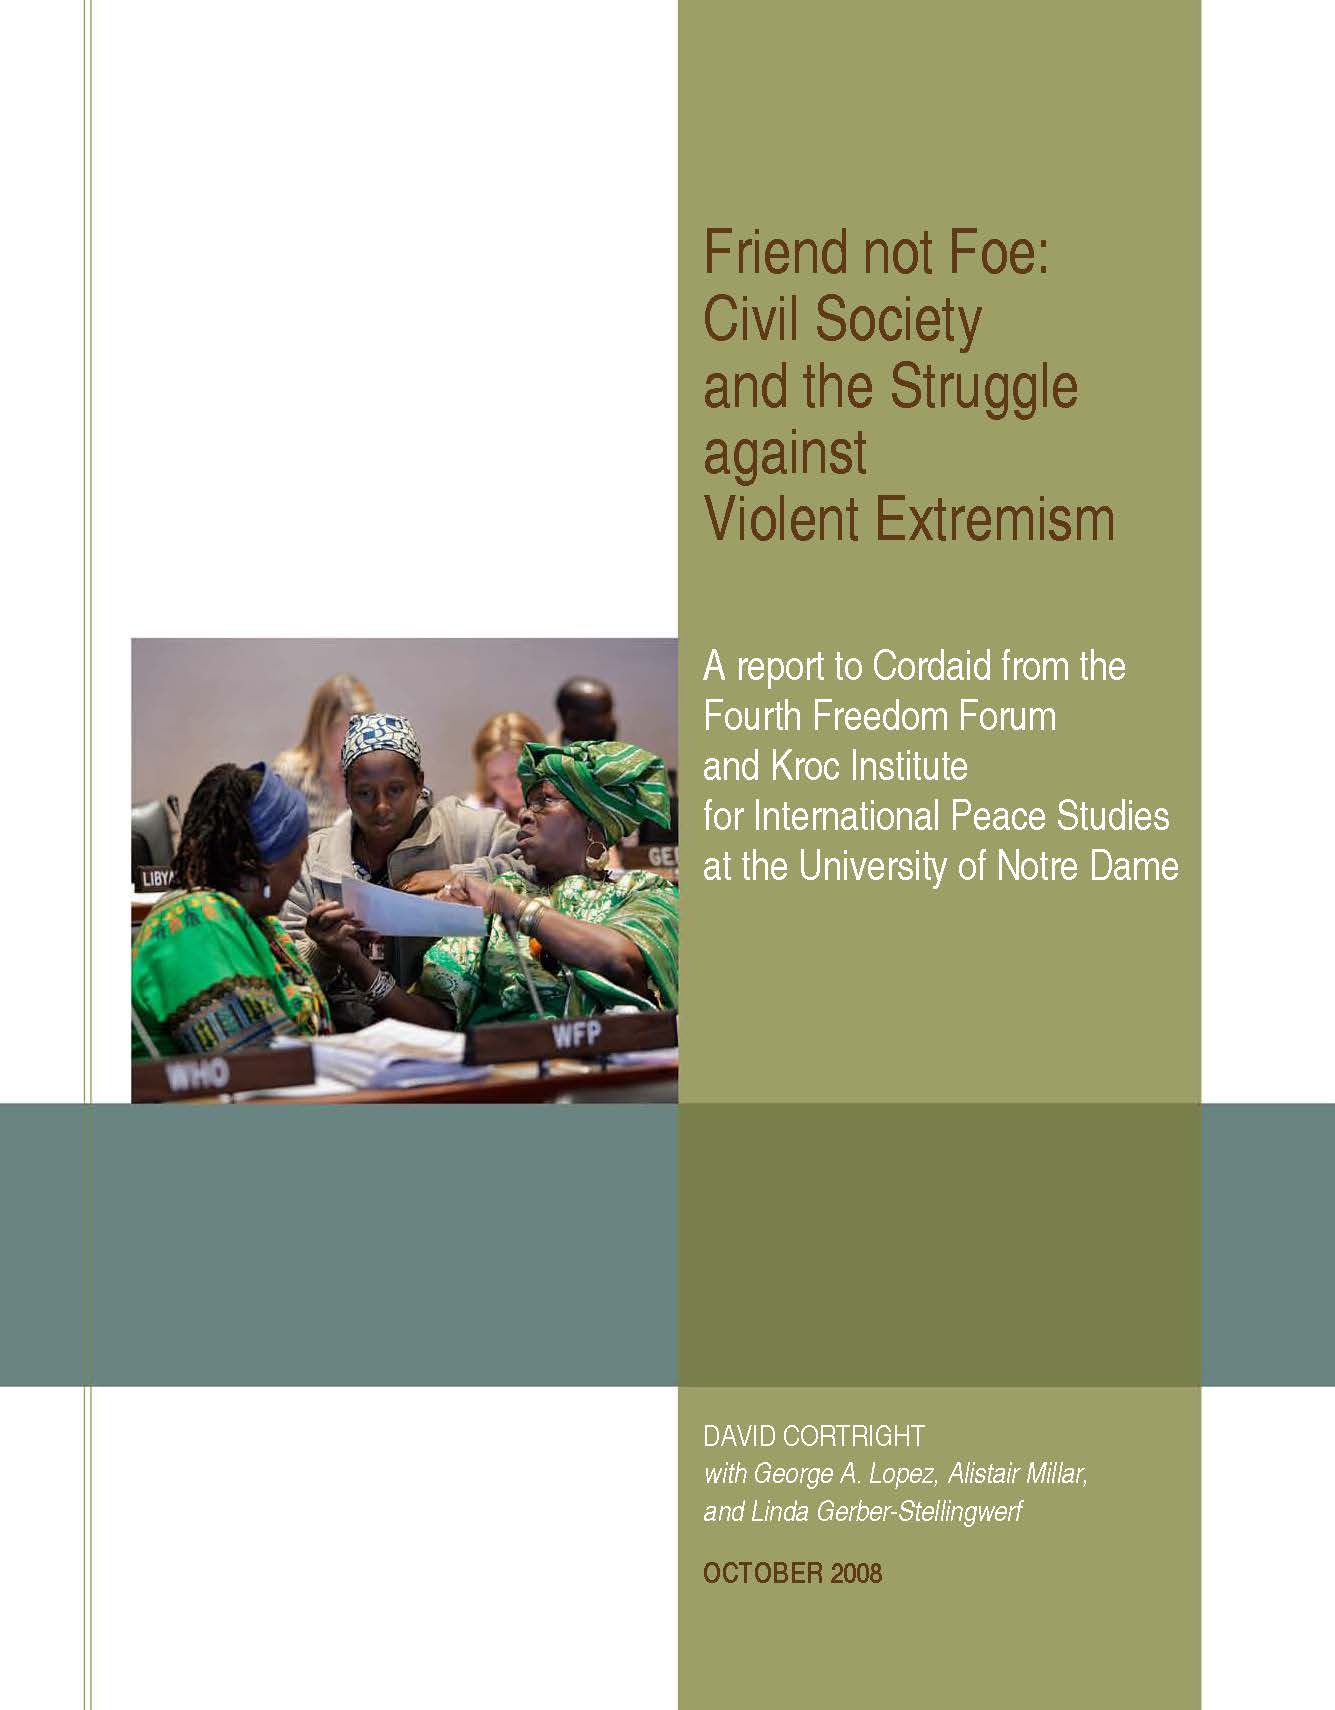 Friend not Foe: Civil Society and the Struggle against Violent Extremism